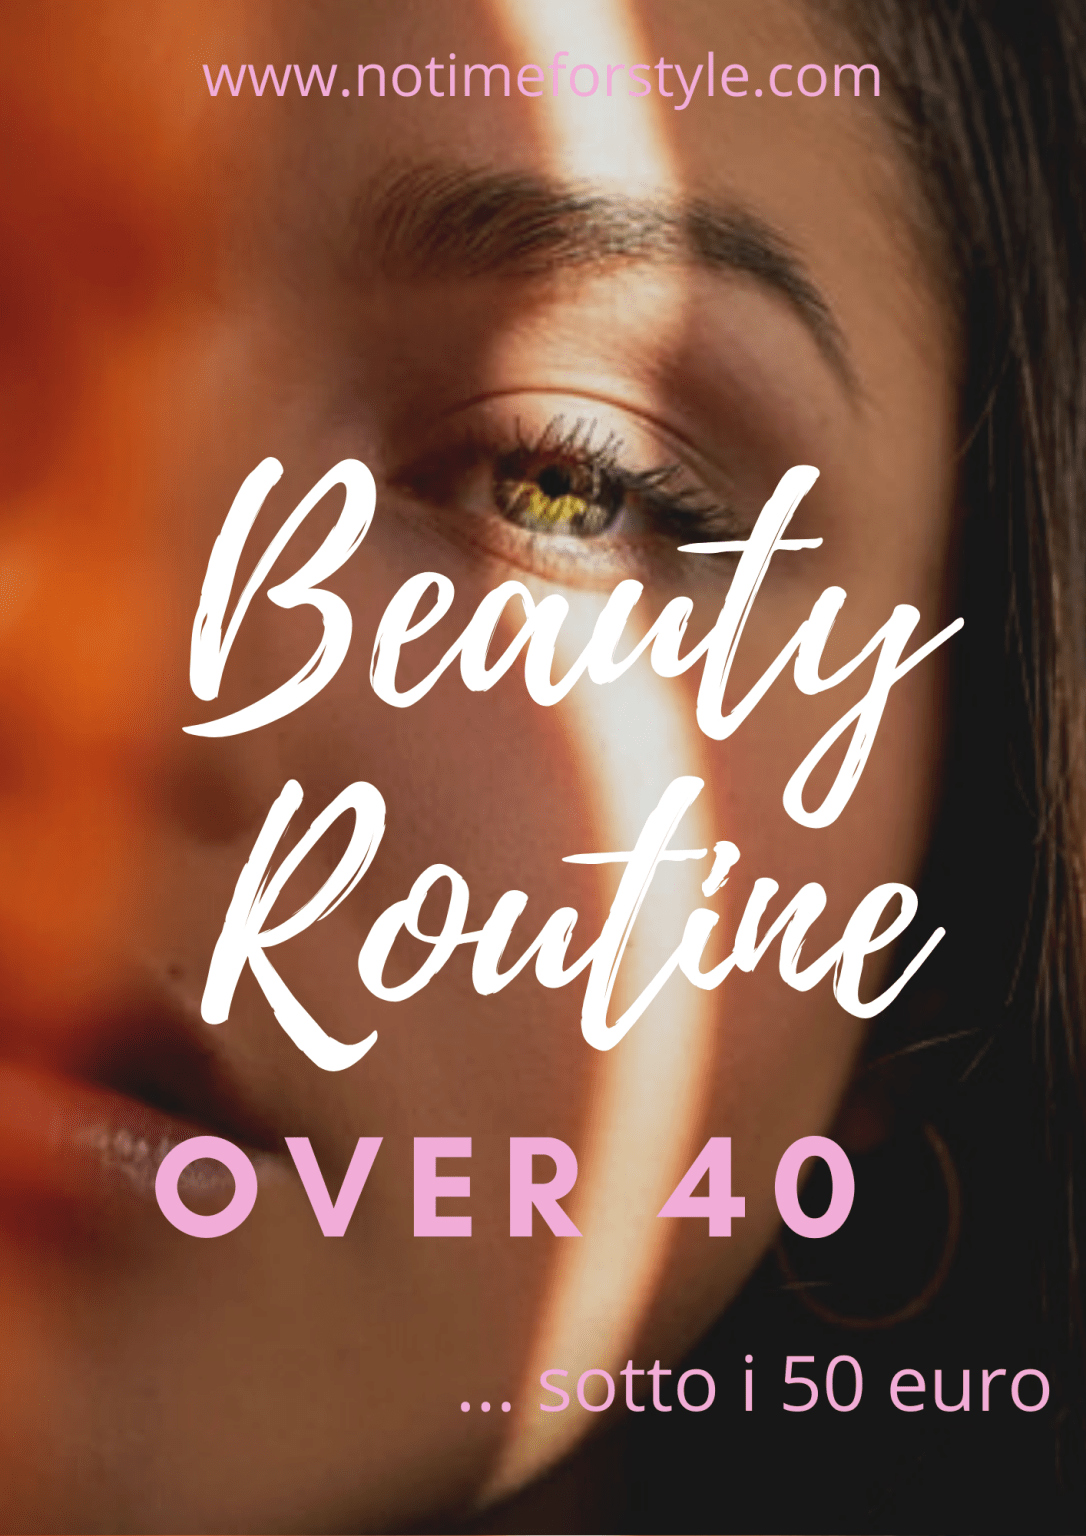 Bellissime over 40: beauty routine completa sotto i 50 euro — No Time For Style